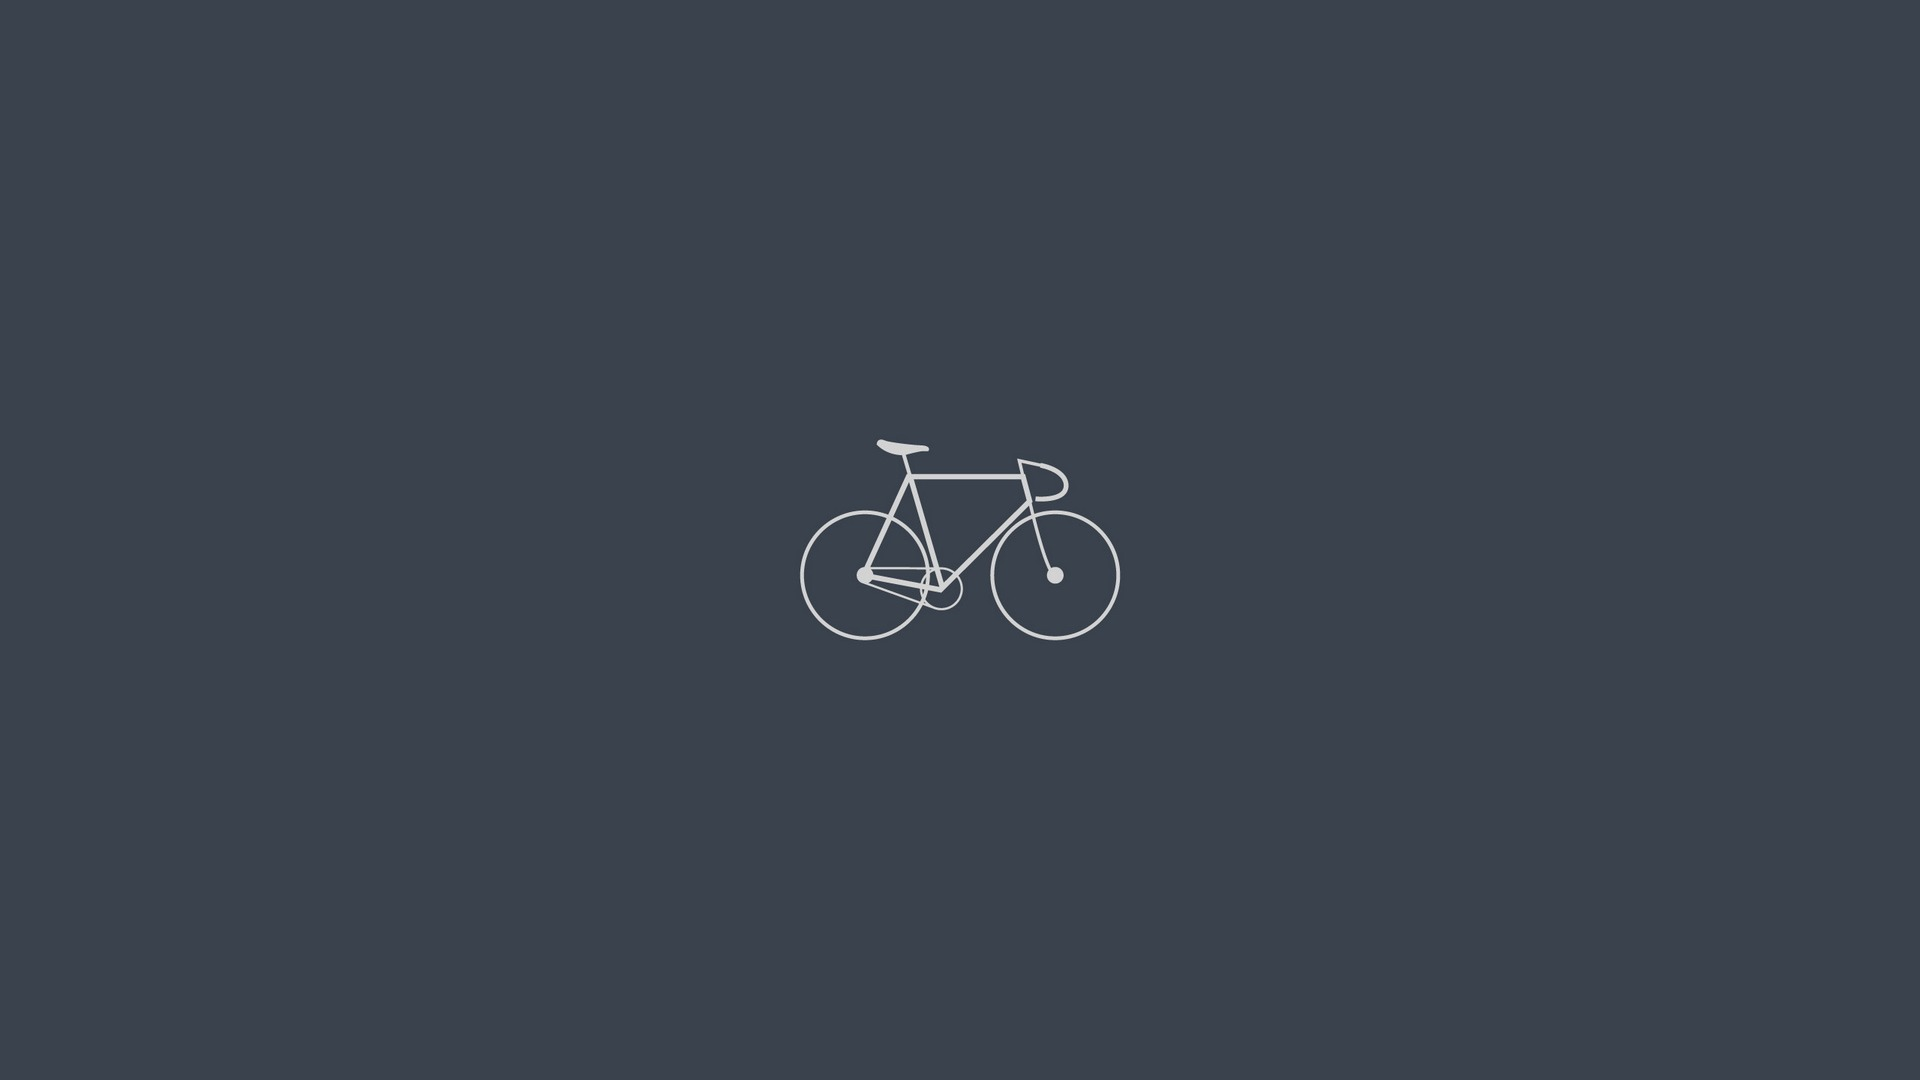 simple bike art 1080p - photo #3